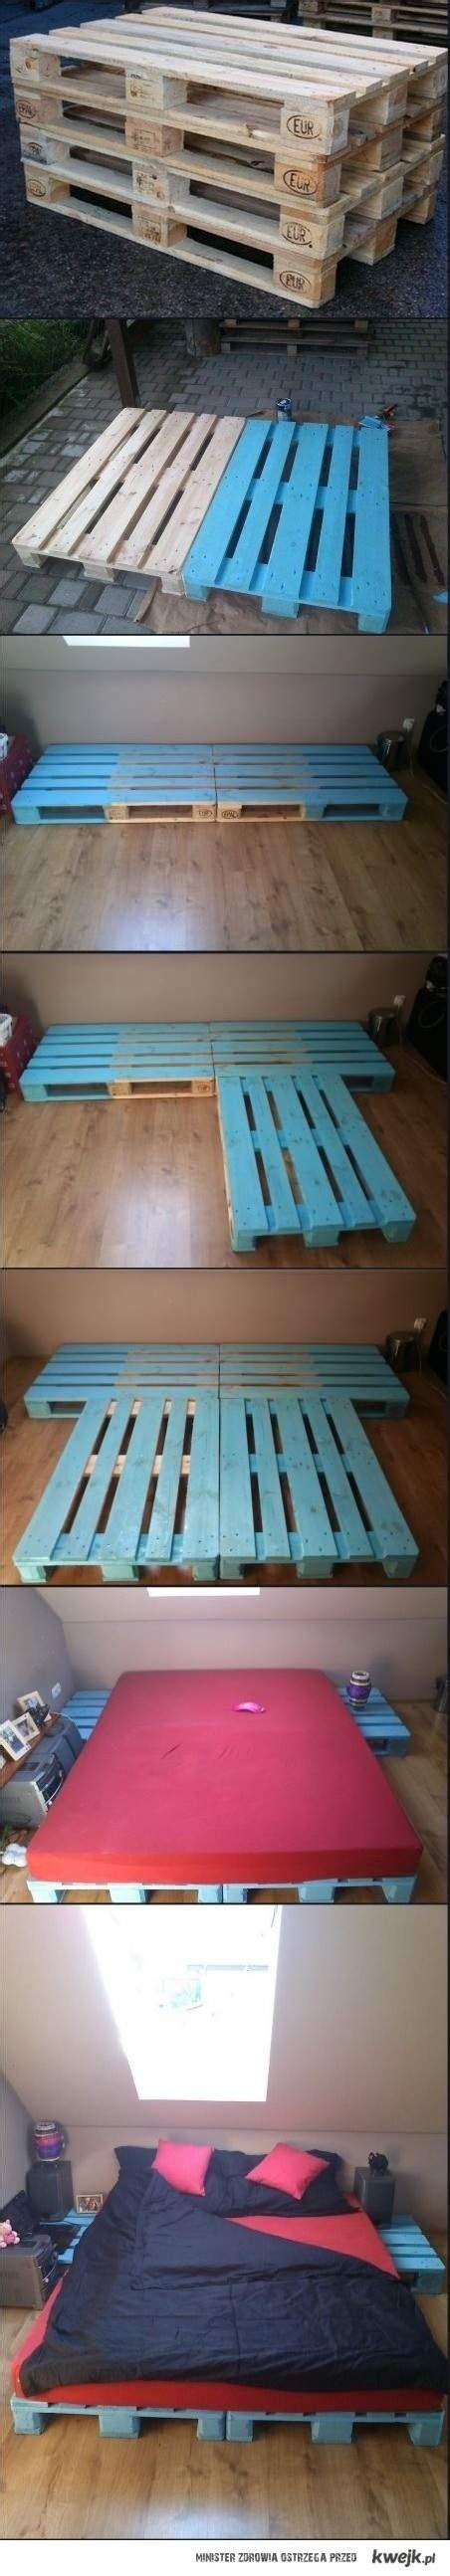 Cheap Bed Frames Diy Cheap Diy Bed Frame Stuff To Do